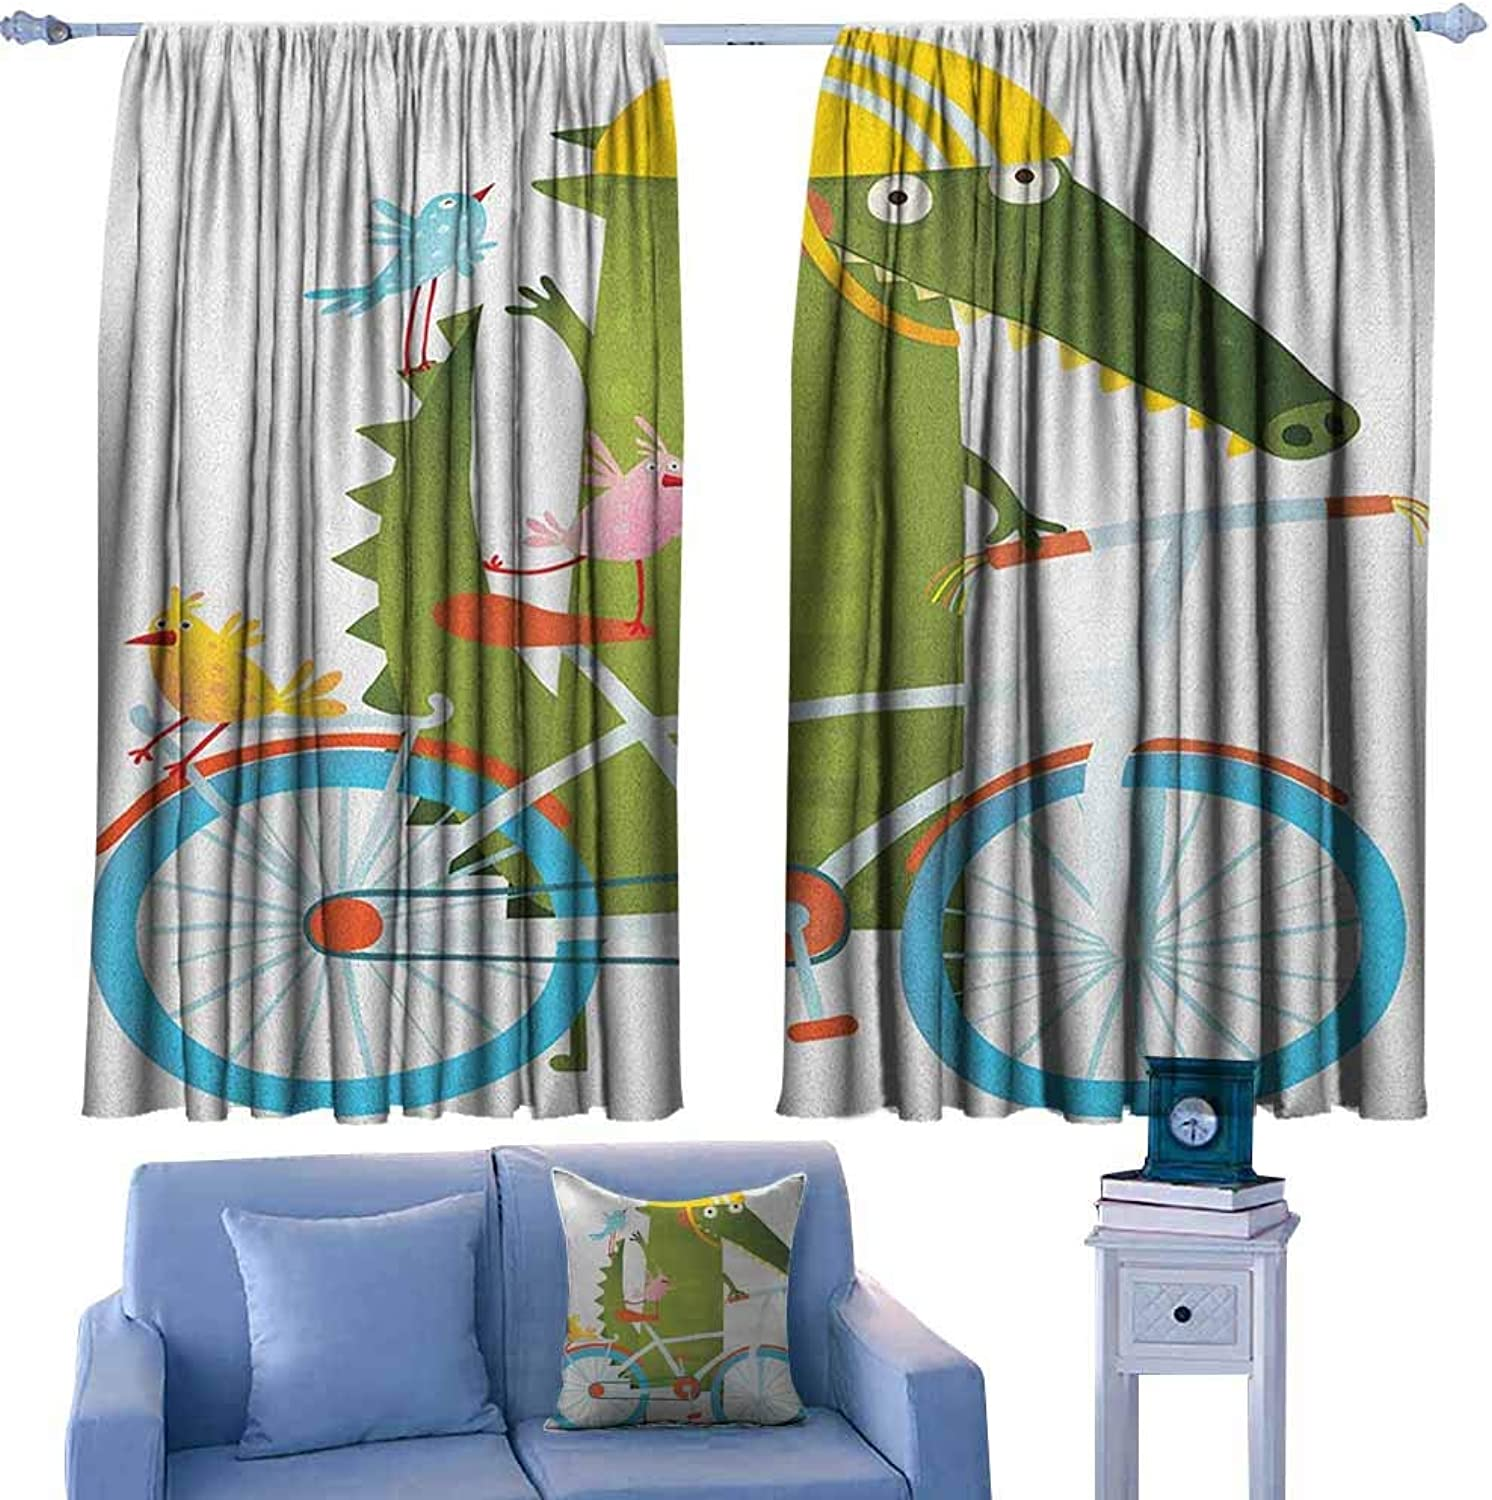 Curtains for livingroom Bedroom,Funny Green Crocodile in Going for a Bike Ride with Friends Cartoon Kids Nursery,Rod Pocket Drapes Thermal Insulated Panels Home décor,W63x45L Inches Multicolor